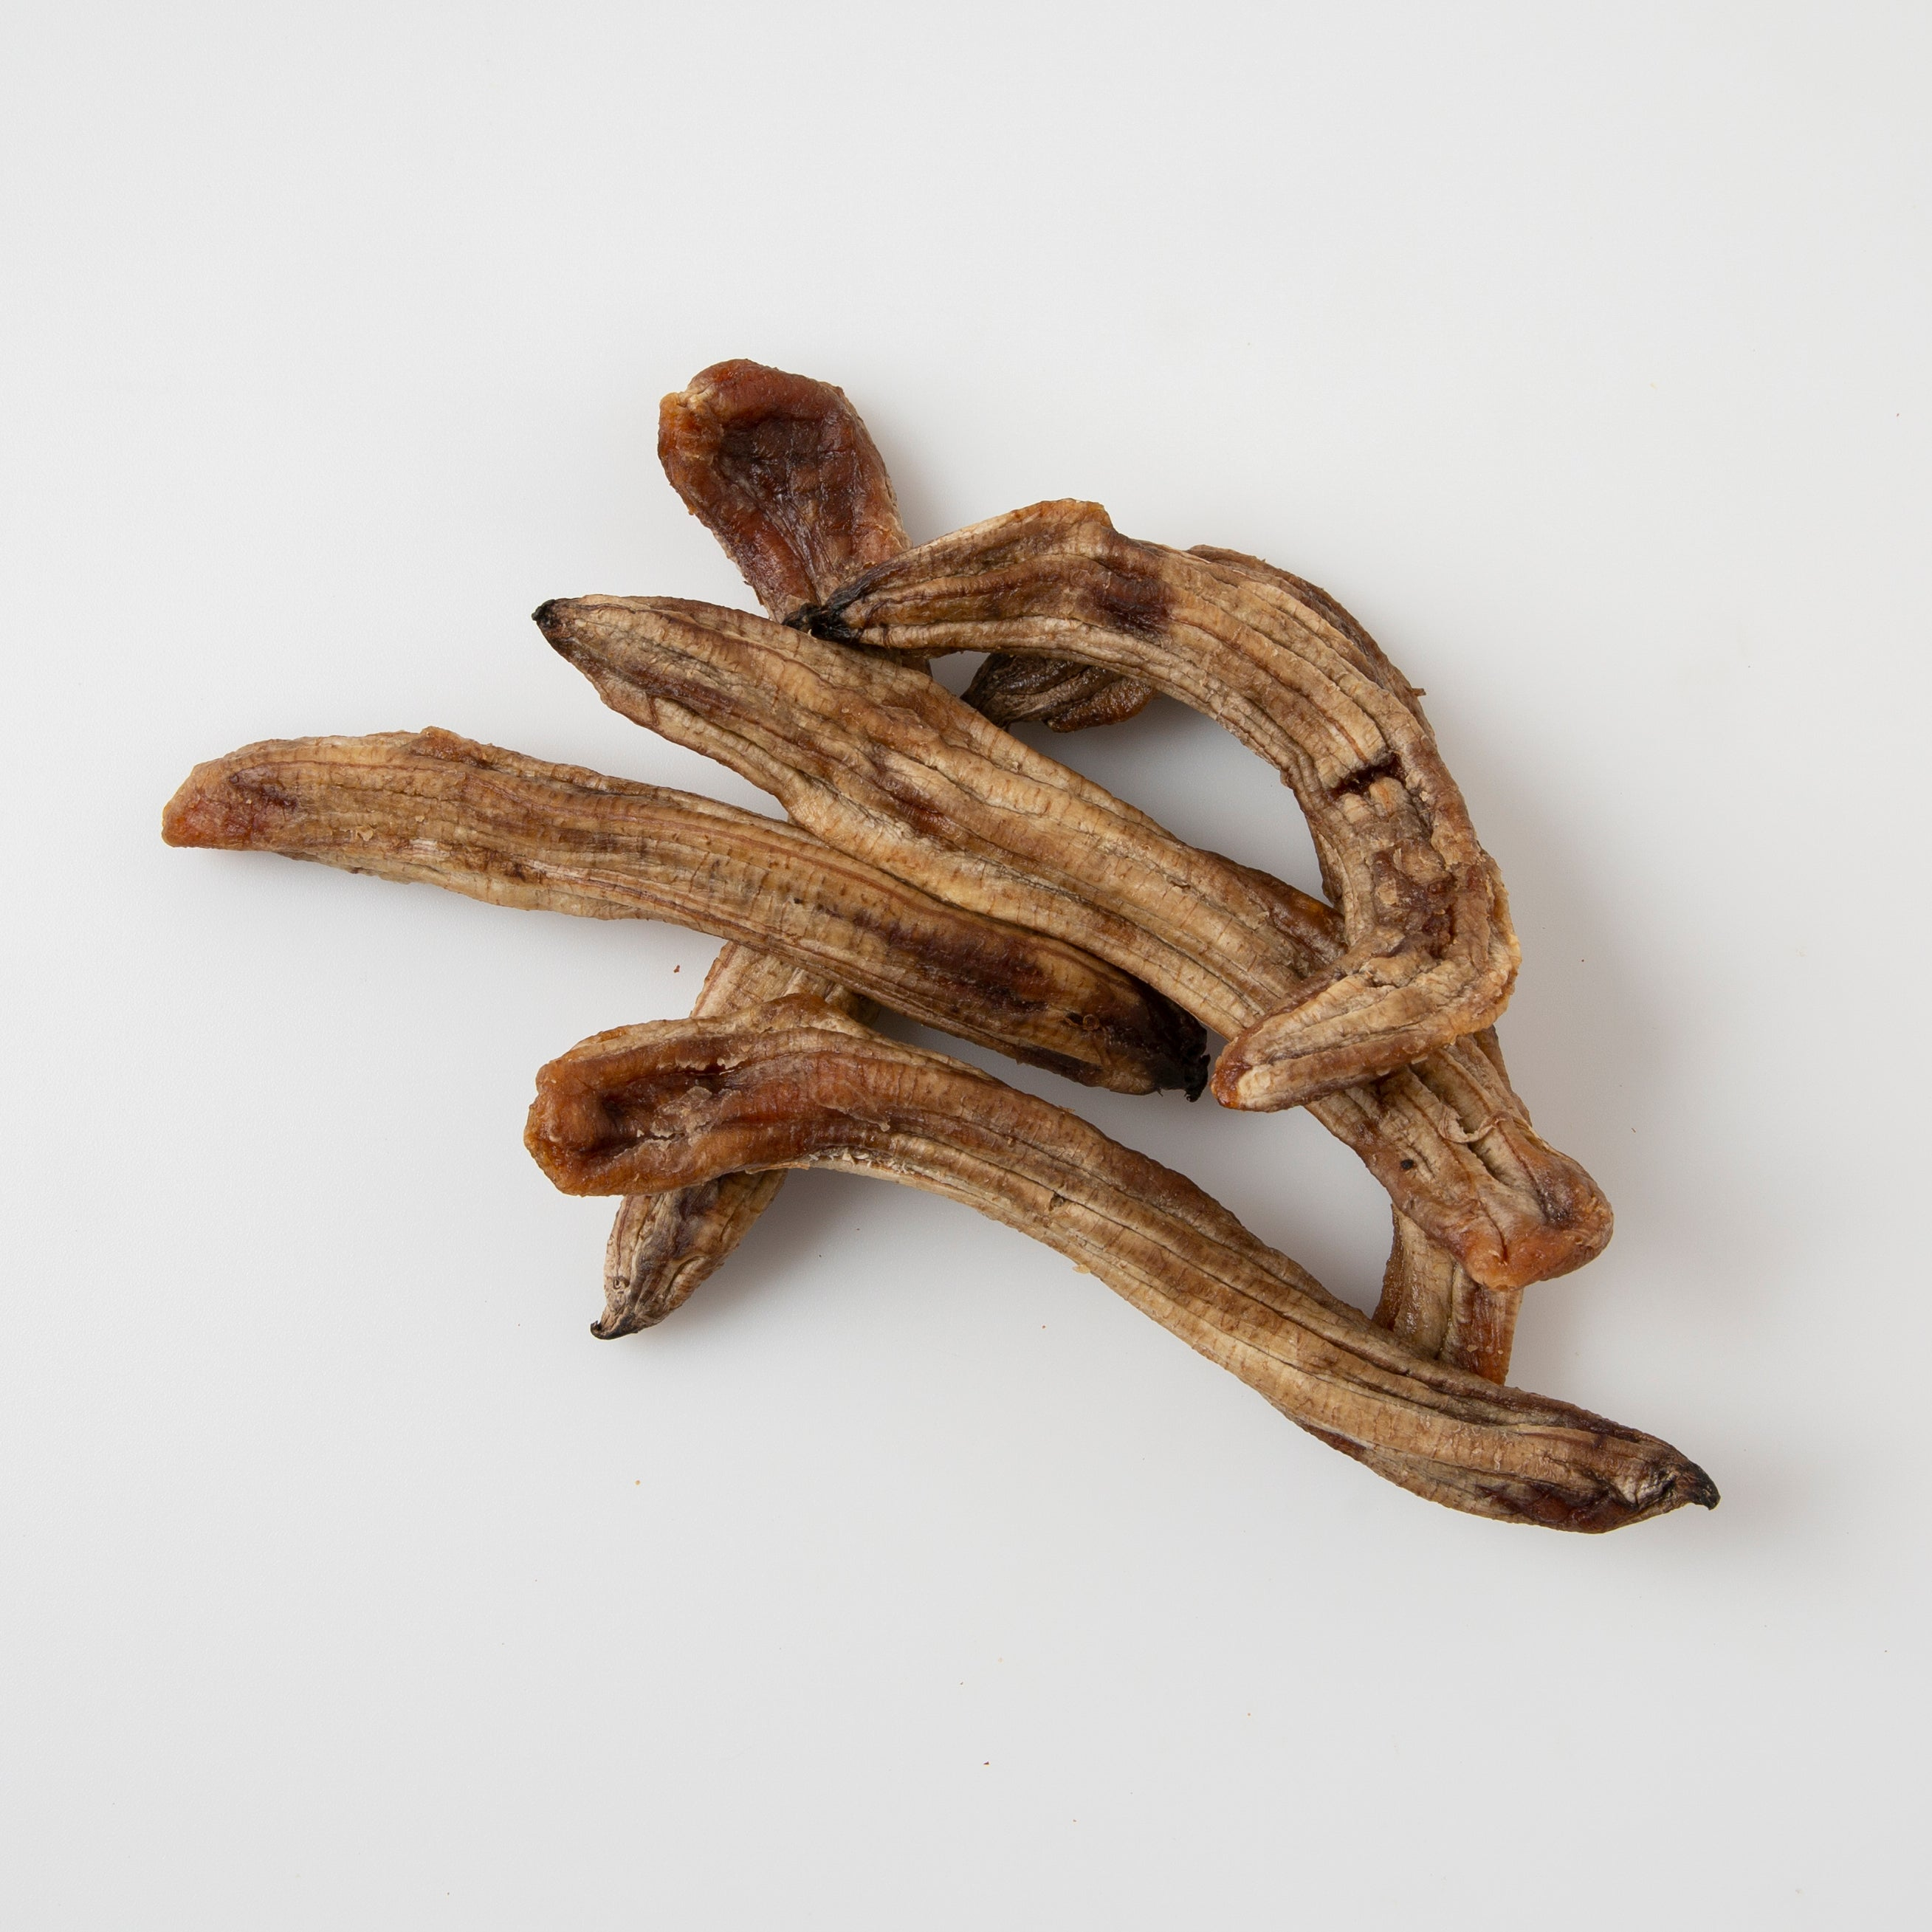 Dried Banana